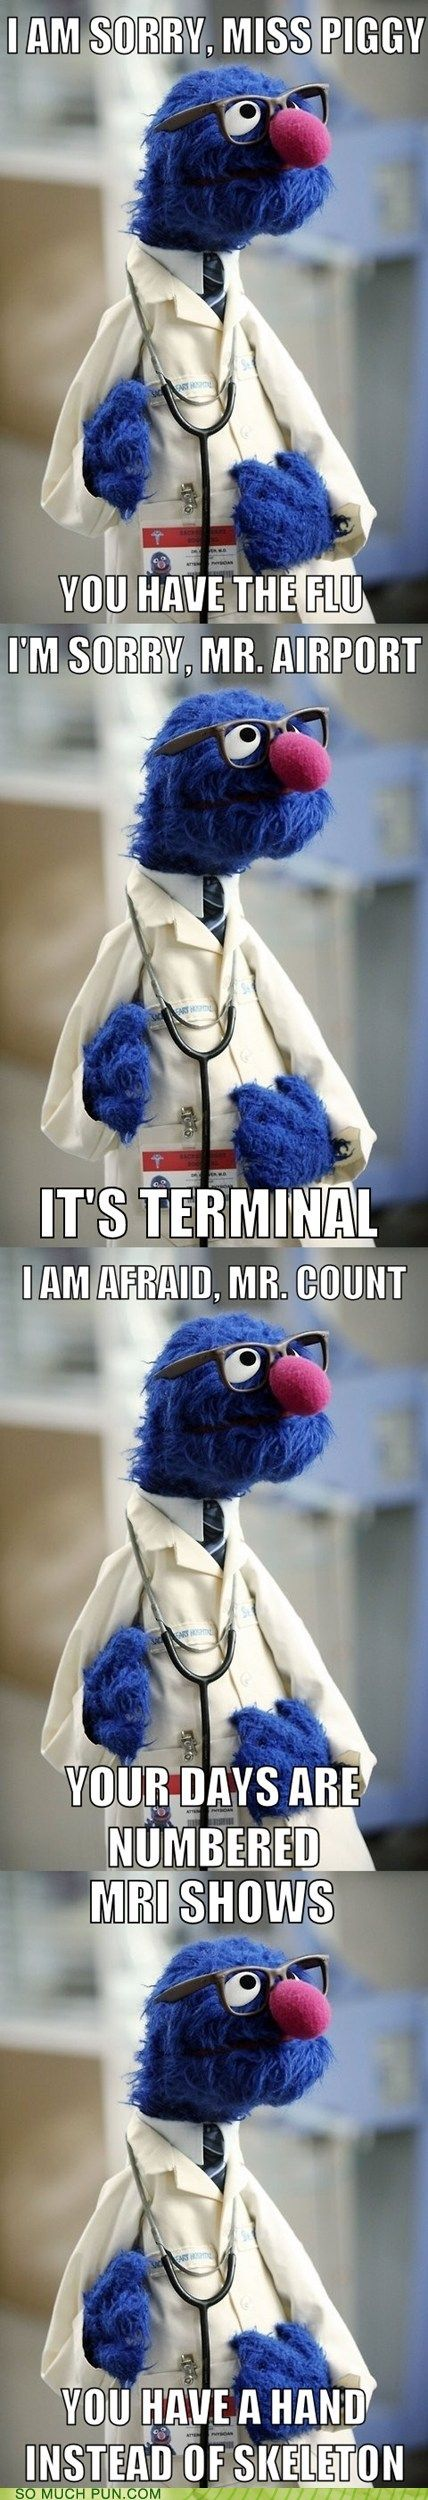 grover will *always* be my favorite.